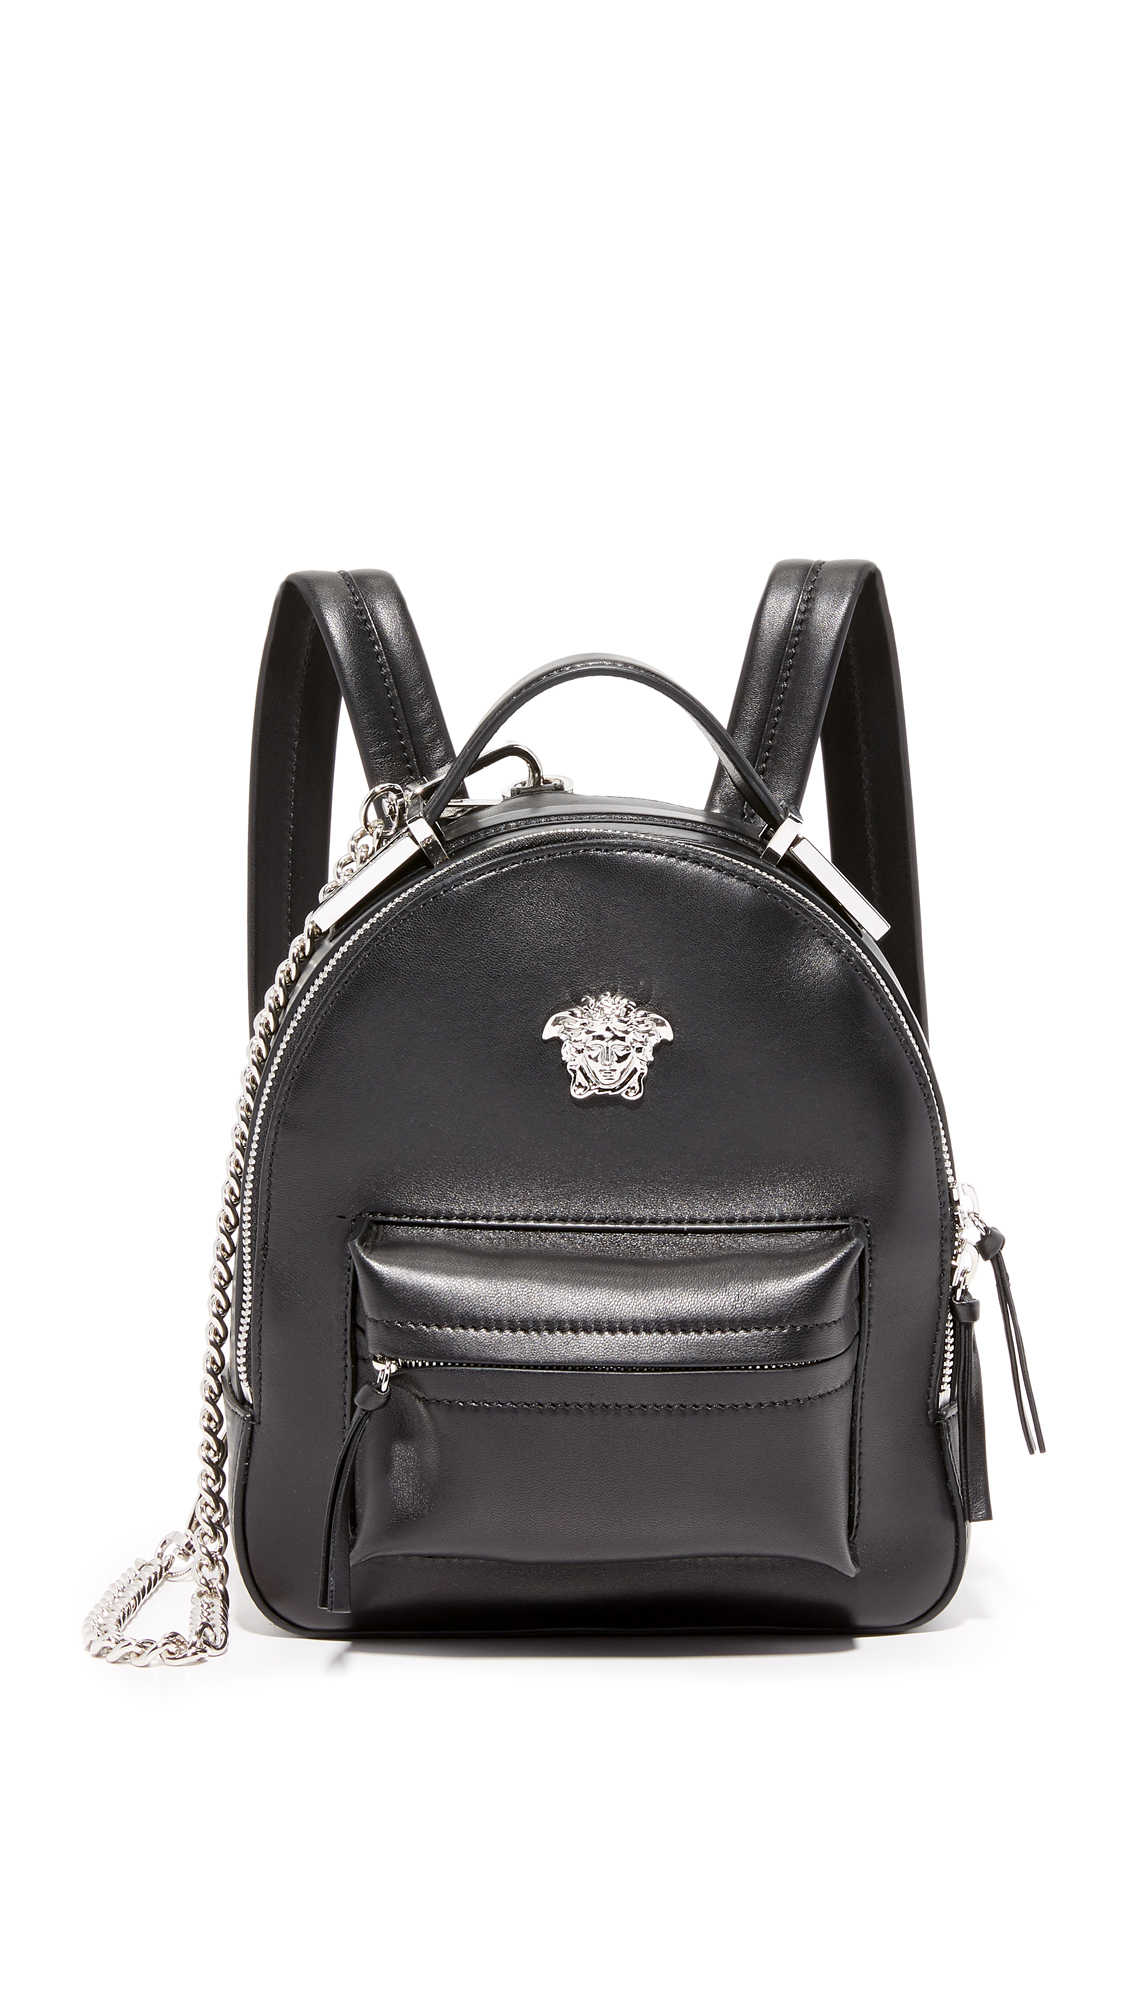 Lyst - Versace Backpack bc01bc3493